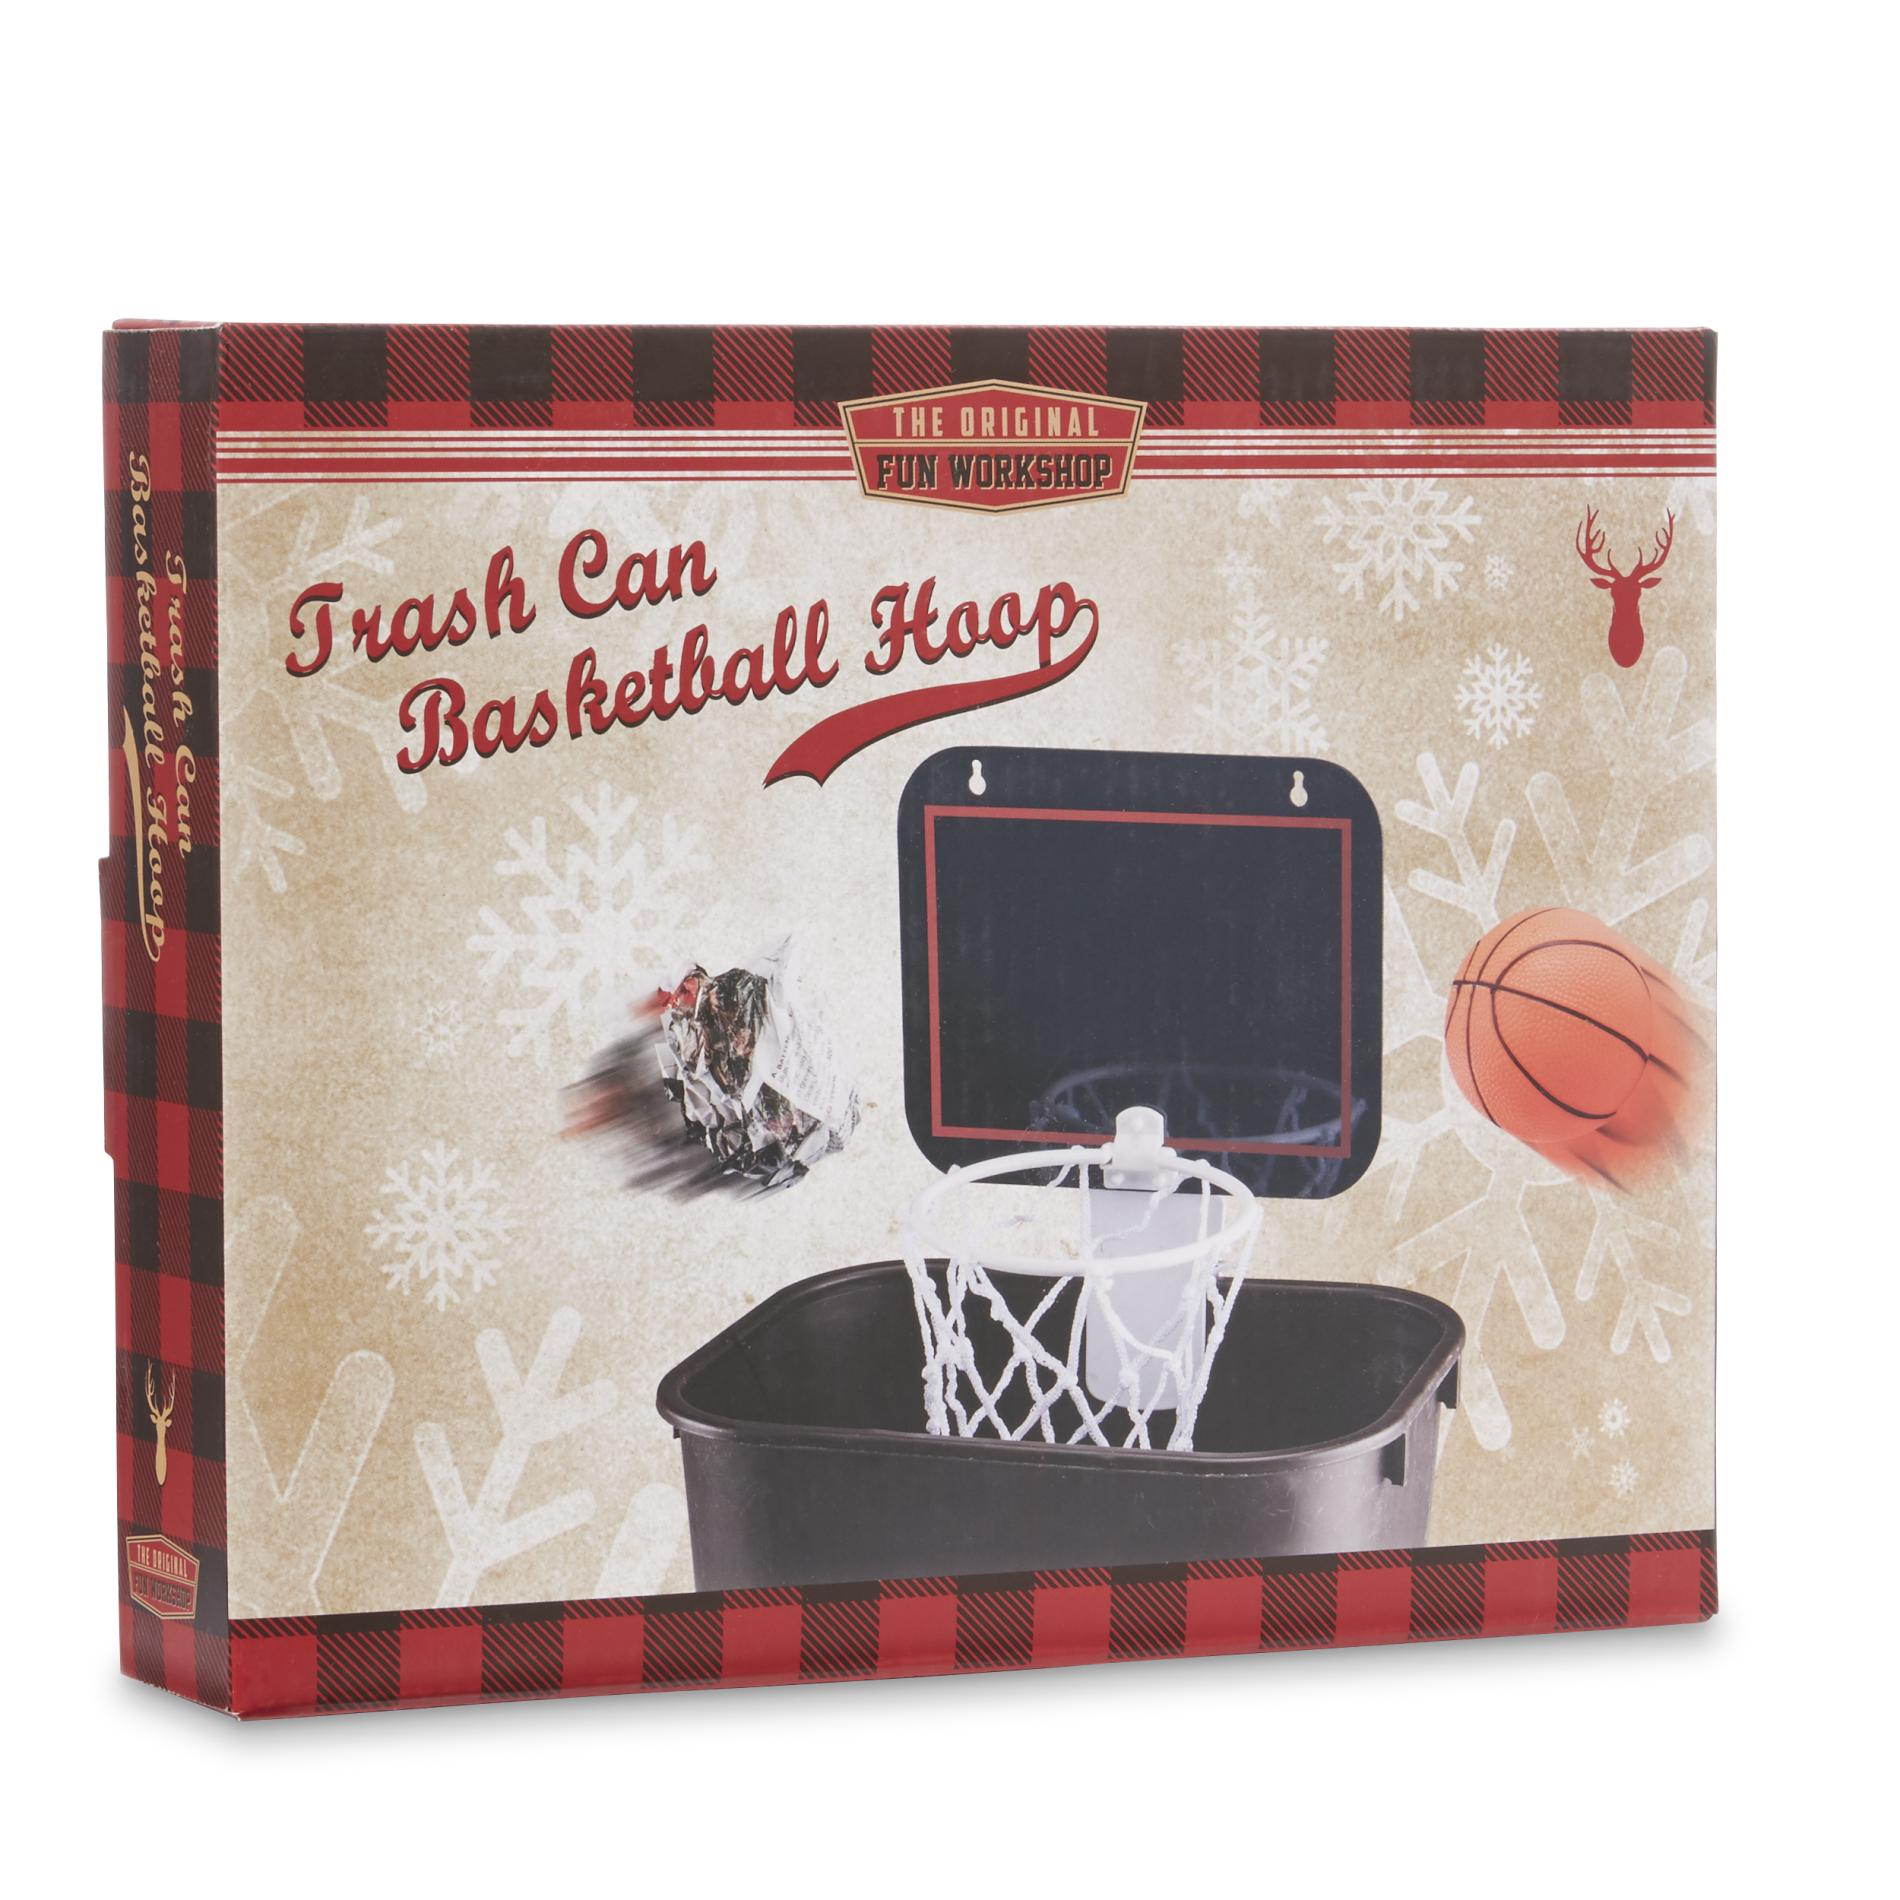 Fun Trash Can Trash Can Basketball Hoop Boxed Gift Set